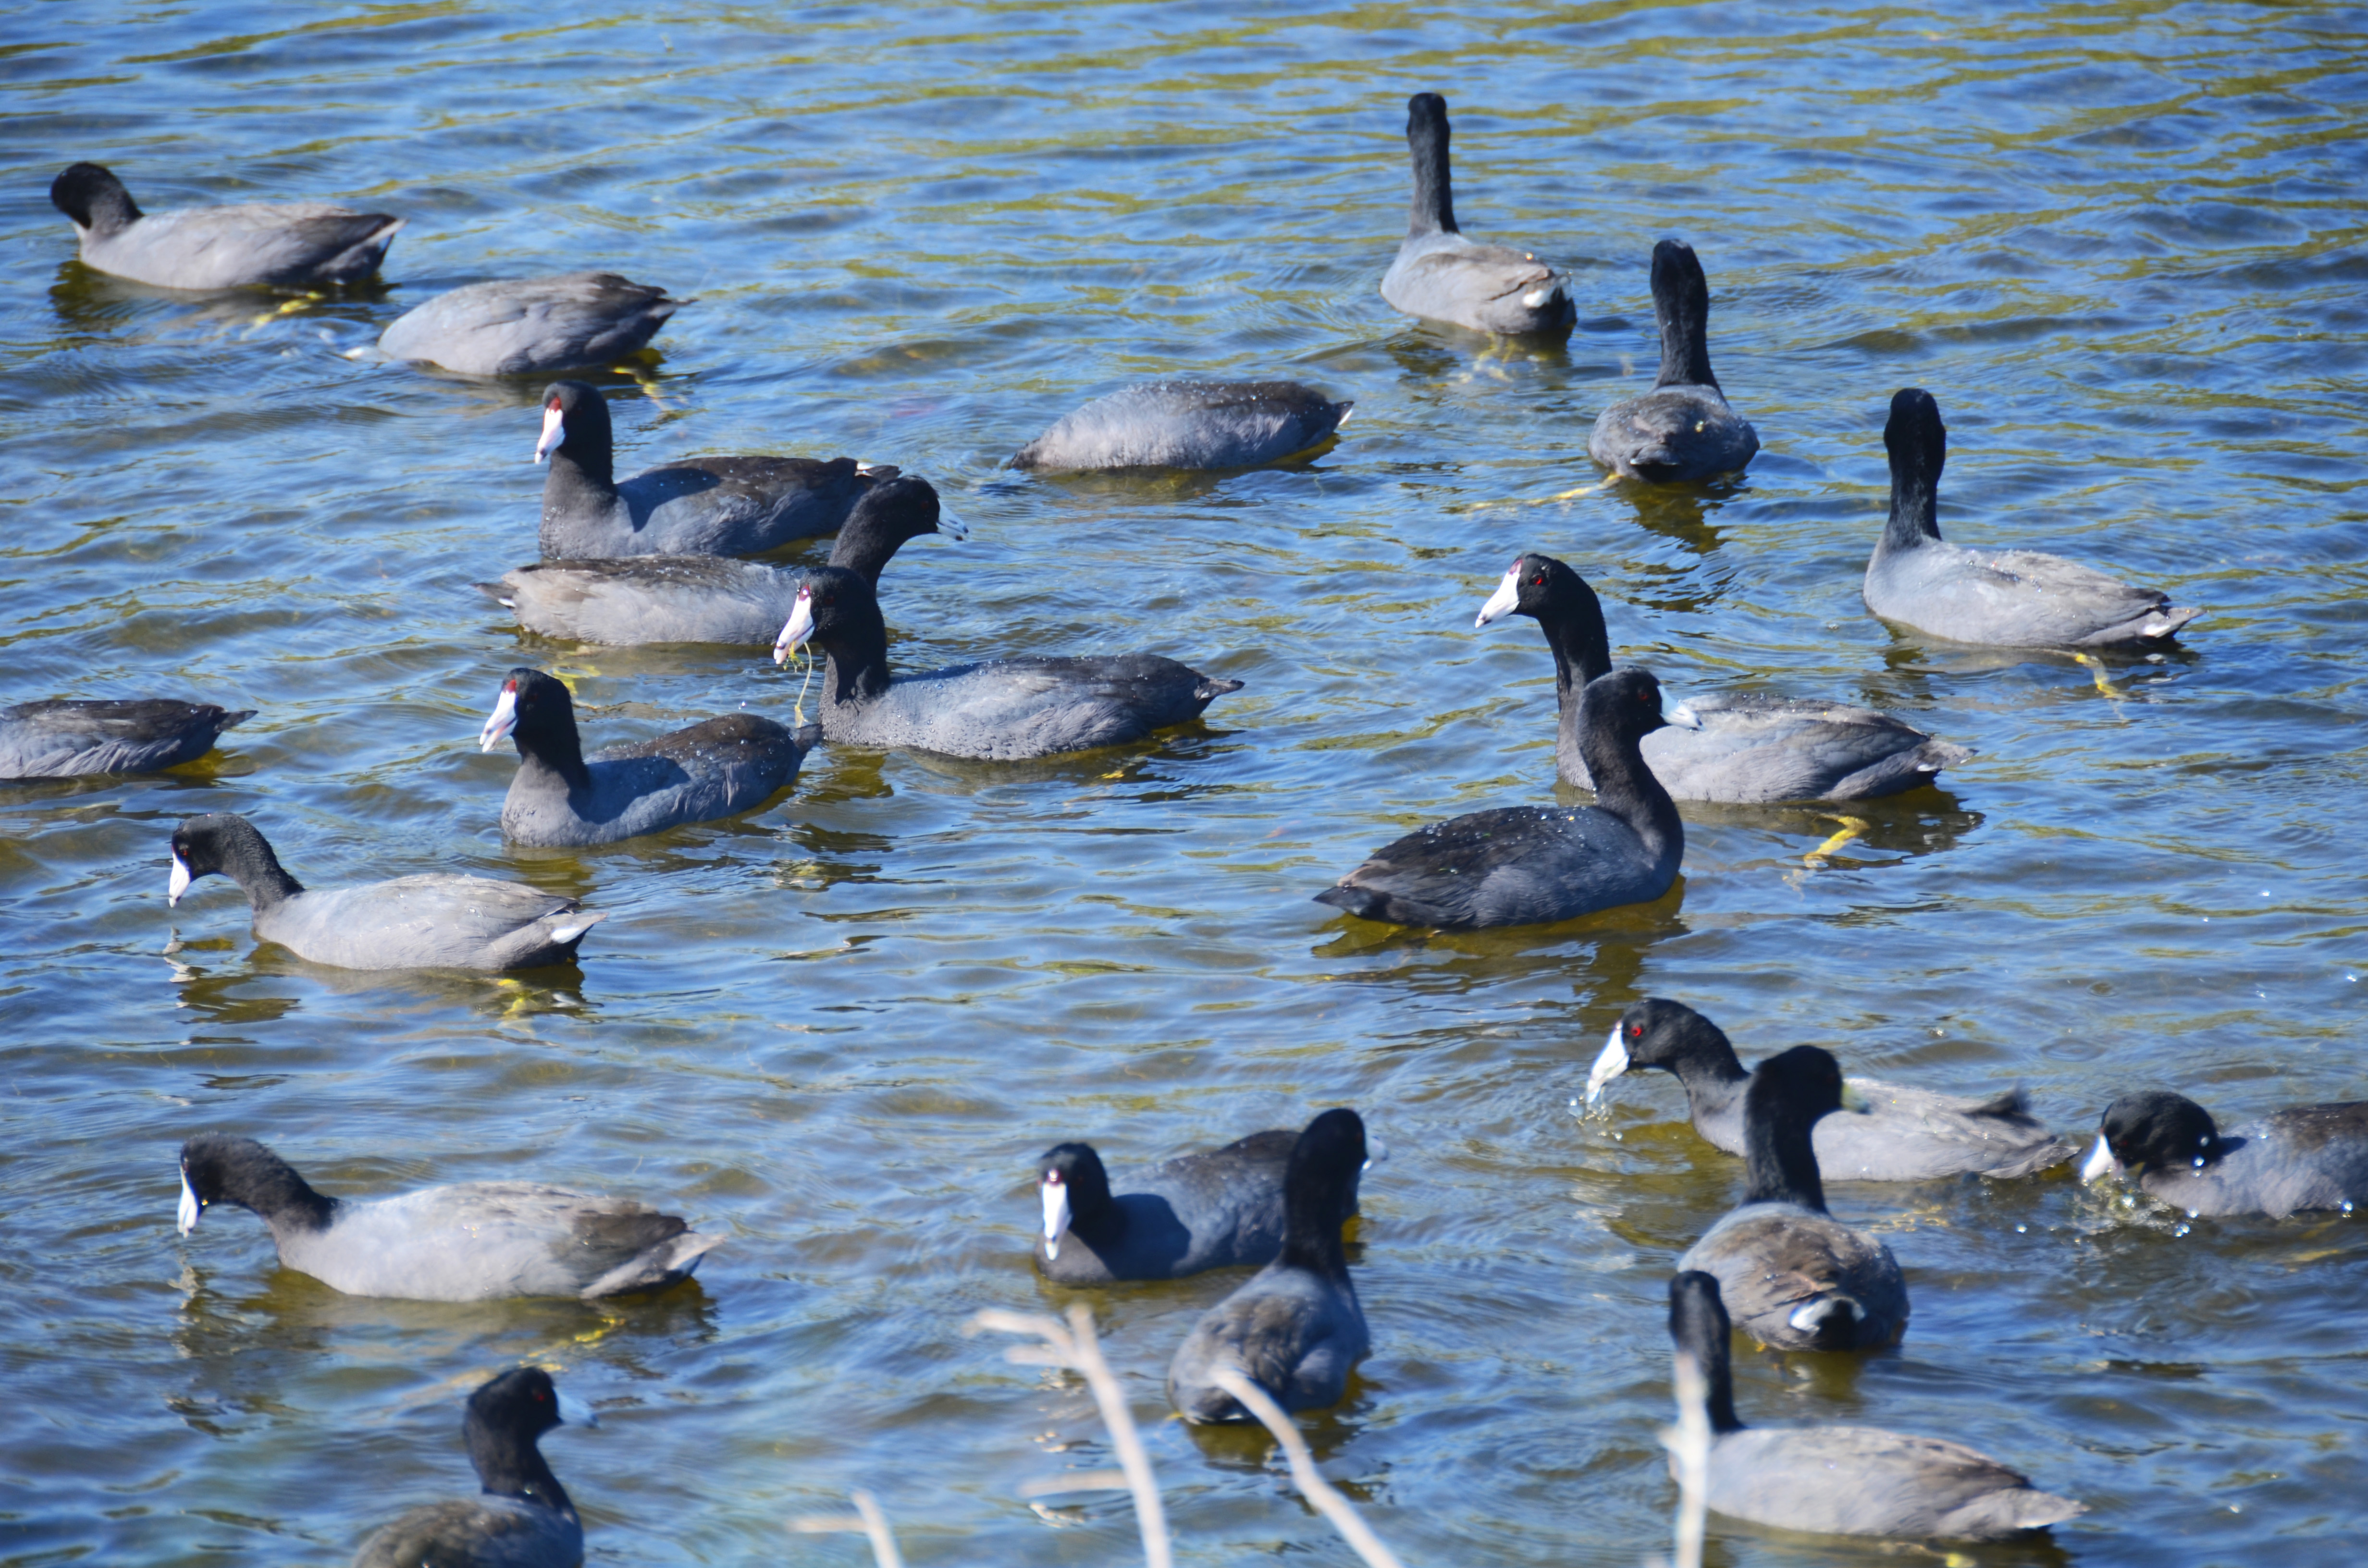 This flock of coots is just a fraction of the waterfowl that spend the winter at Canaveral National Seashore and the adjacent Merritt Island National Wildlife Refuge in Florida.